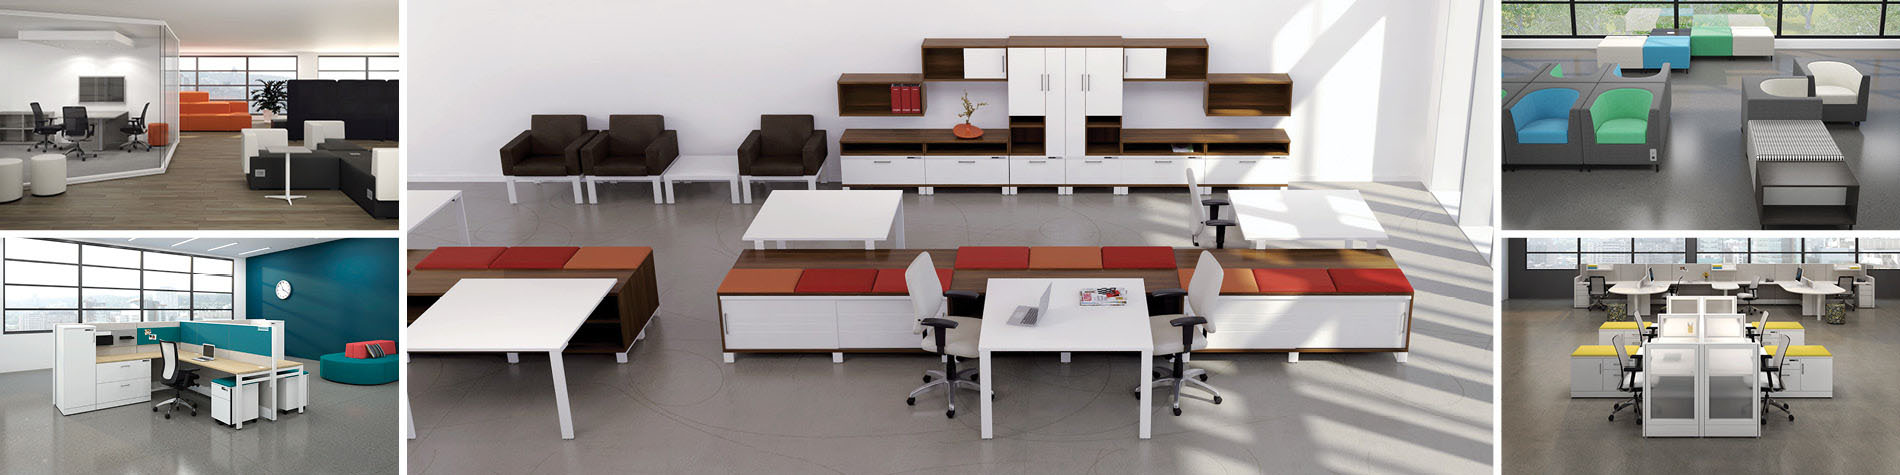 Meubles Fraser Furniture Office Furniture Great Pricing Great Quality Source Office Furniture